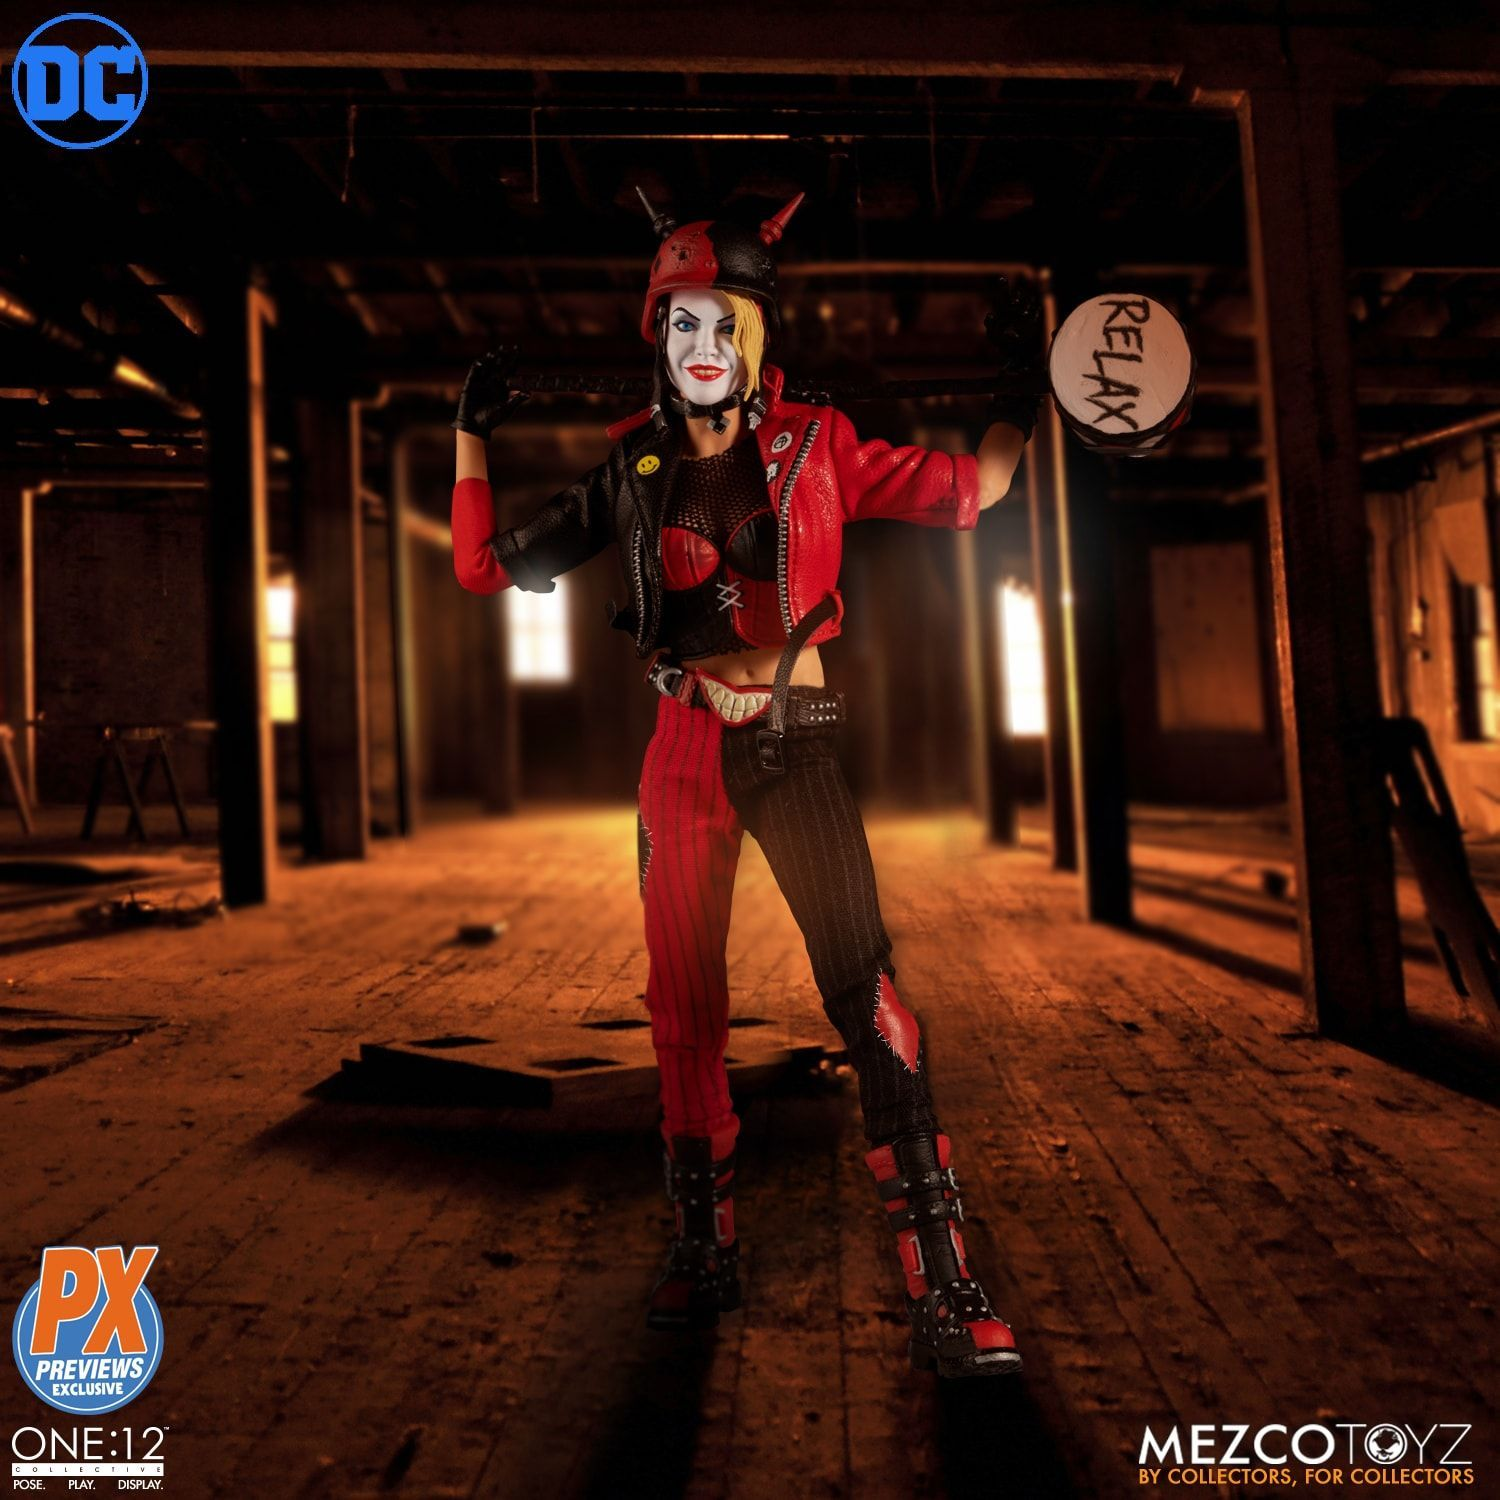 [ONE12] HarleyQuinn_PlayForKeeps_DC (PX) 006.jpg